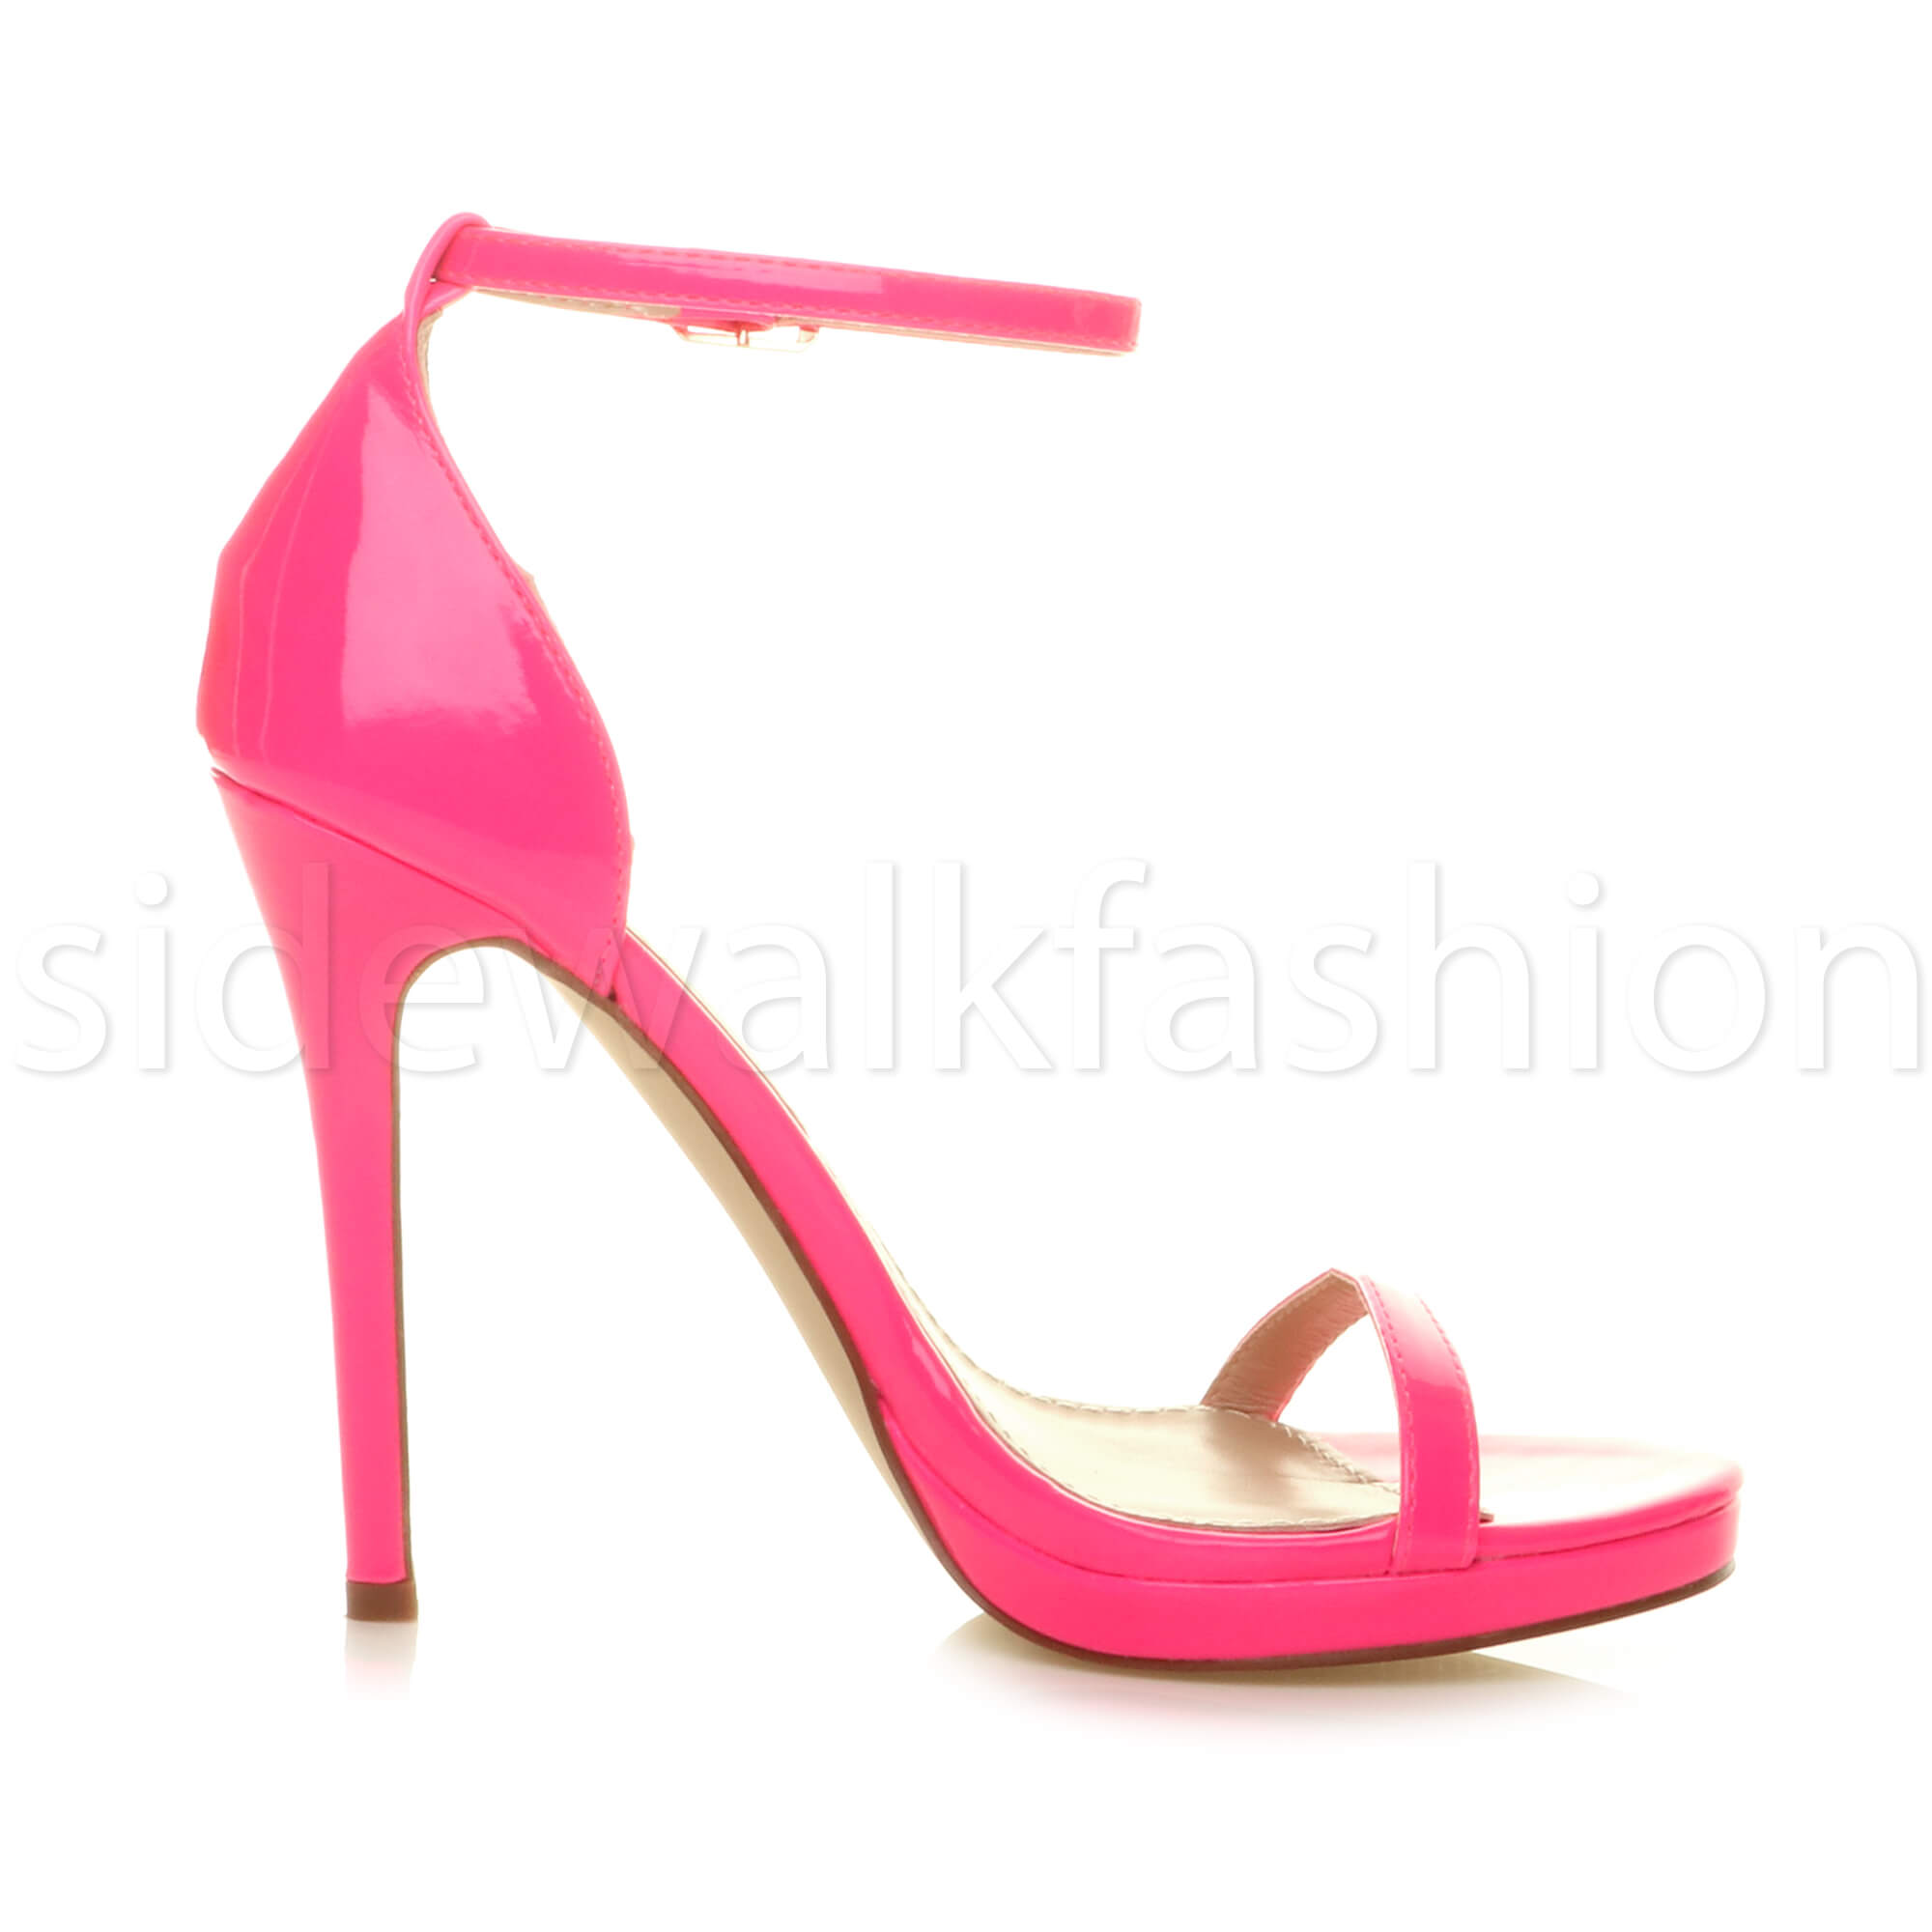 Womens-ladies-high-heel-barely-there-strappy-party-peep-toe-shoes-sandals-size thumbnail 73